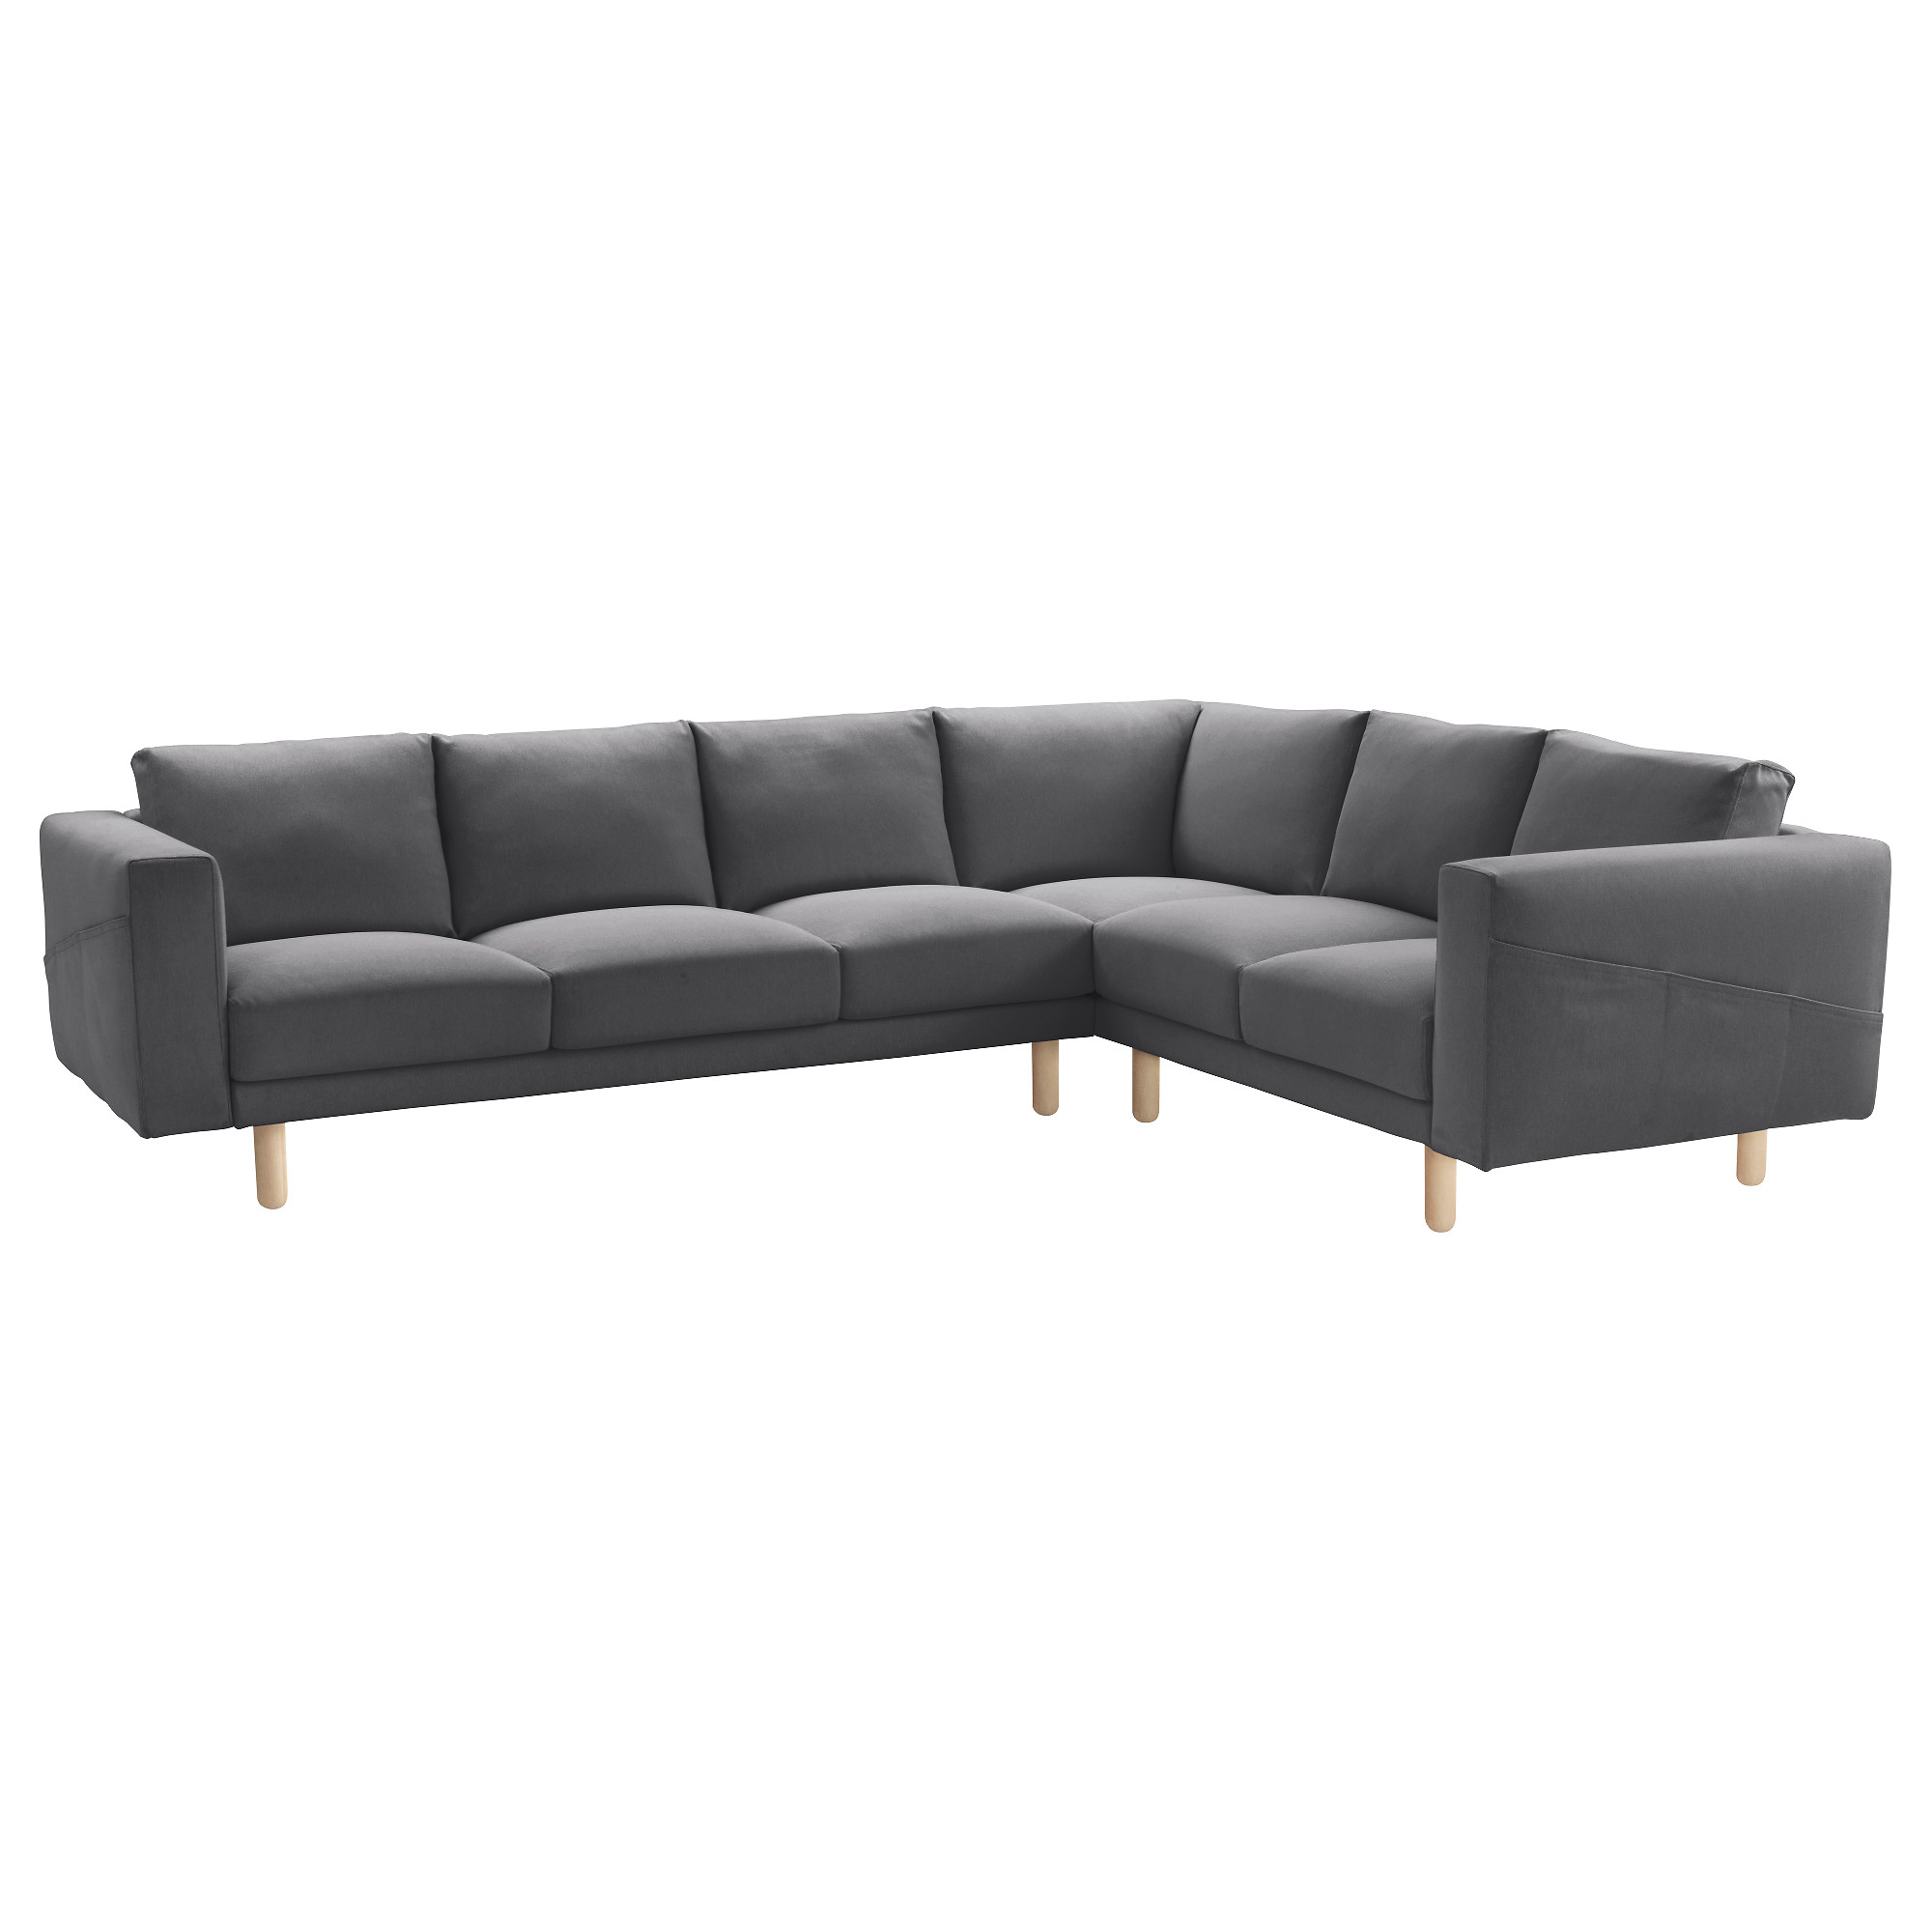 Trendy Denali Charcoal Grey 6 Piece Reclining Sectionals With 2 Power Headrests Throughout Sectional Corner Sofa (View 15 of 20)